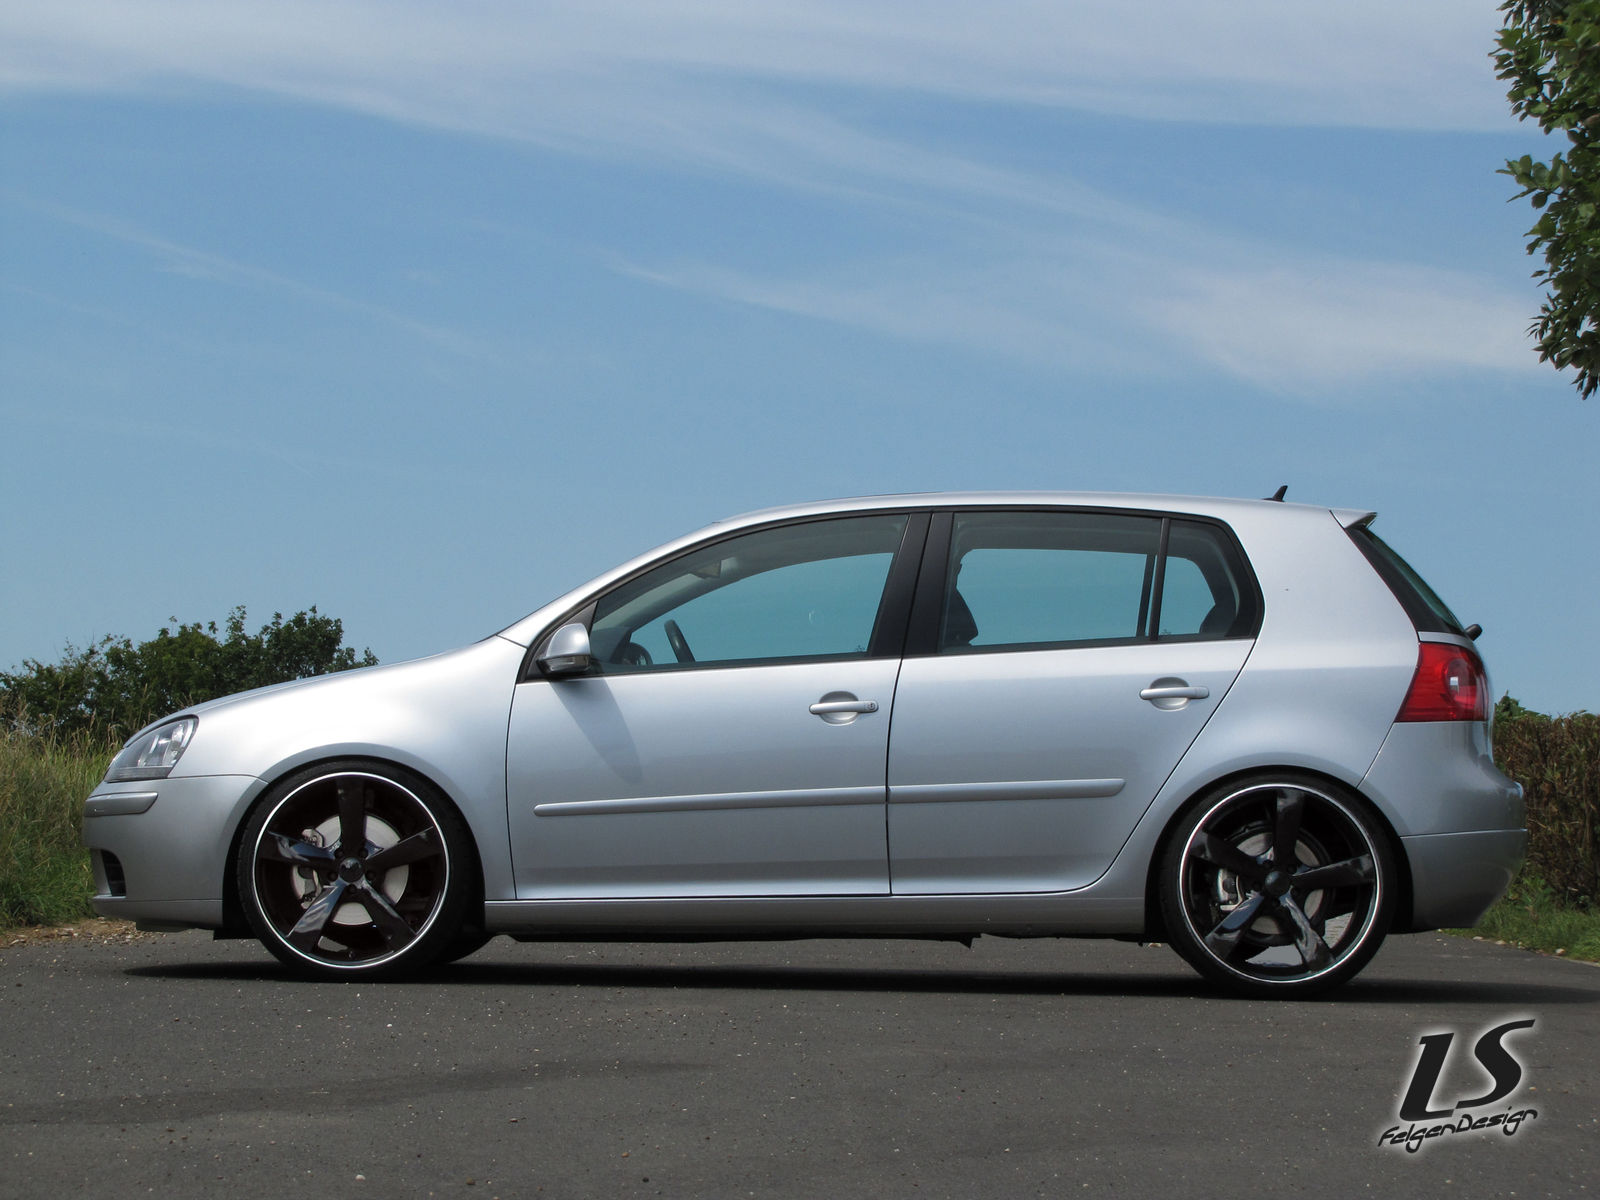 news alufelgen vw golf edition 30 edition 35 gti gtd r32. Black Bedroom Furniture Sets. Home Design Ideas